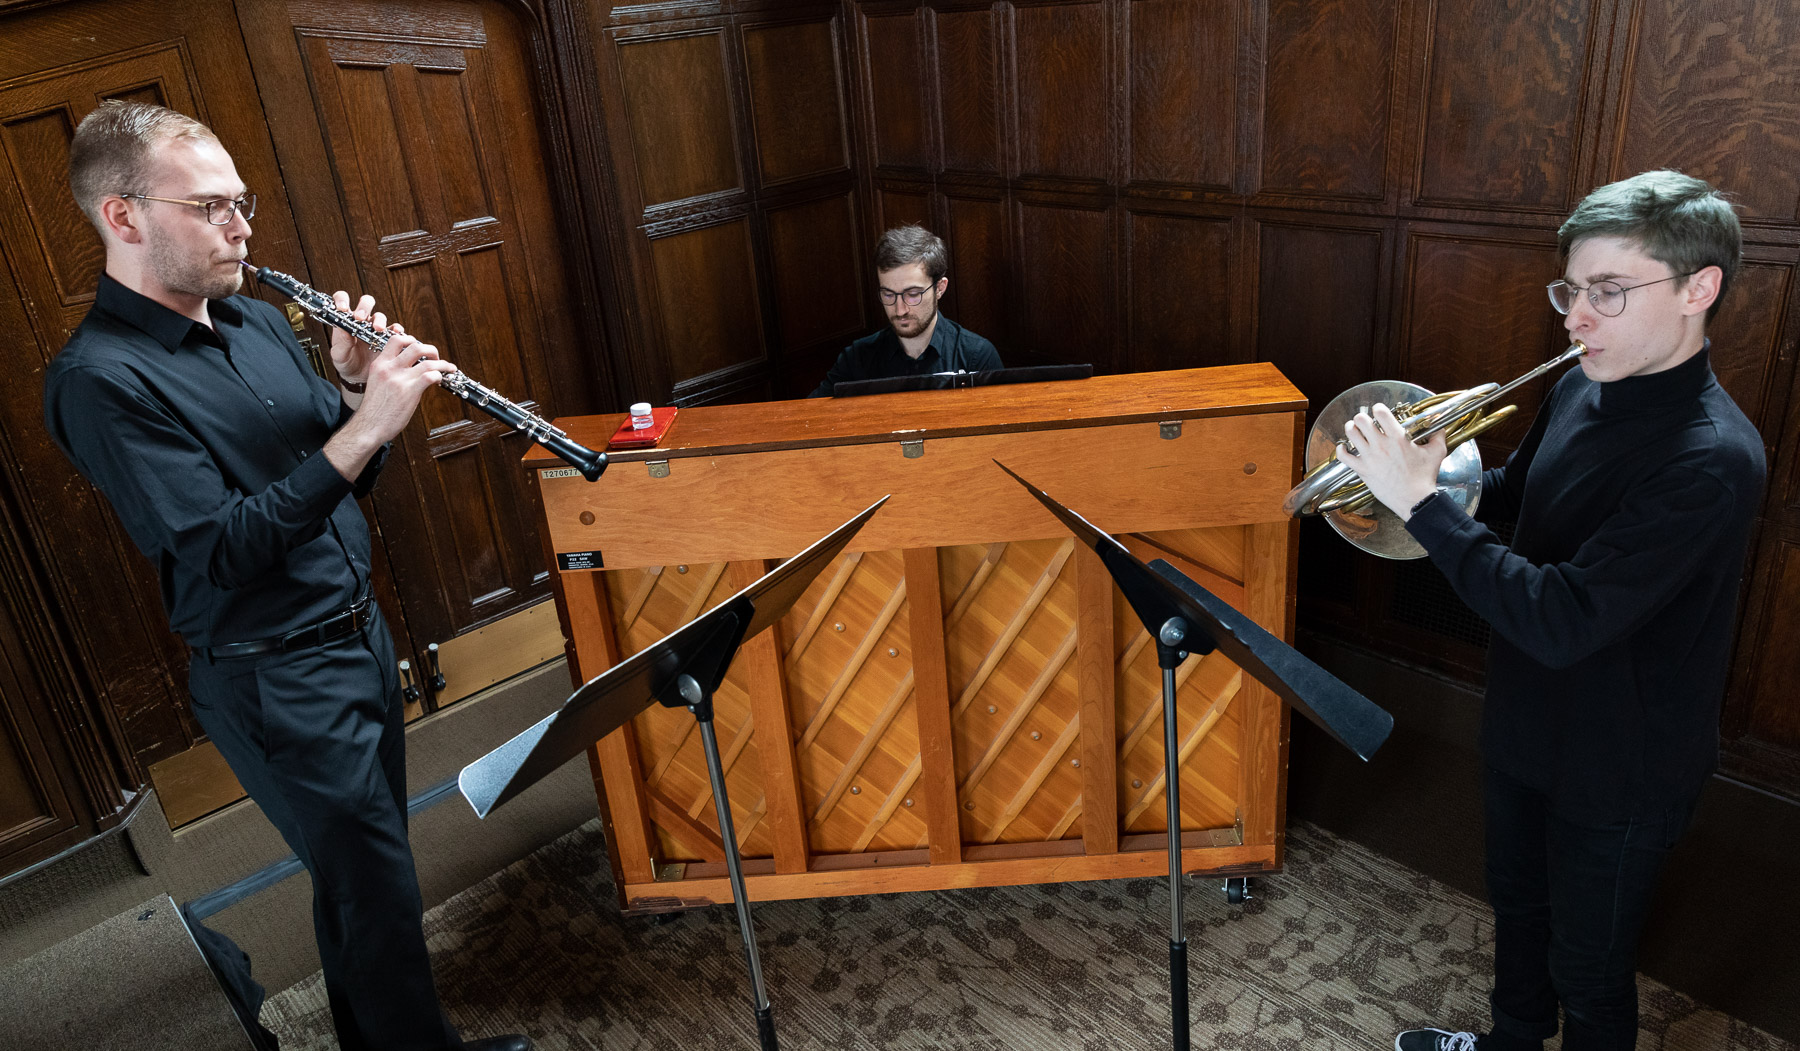 Left to right, Ian Egeberg, Ryan Senger and Jacob Nelson, students in the School of Music, performed at the breakfast hosted by the Office of Institutional Diversity and Equity. (DePaul University/Jeff Carrion)